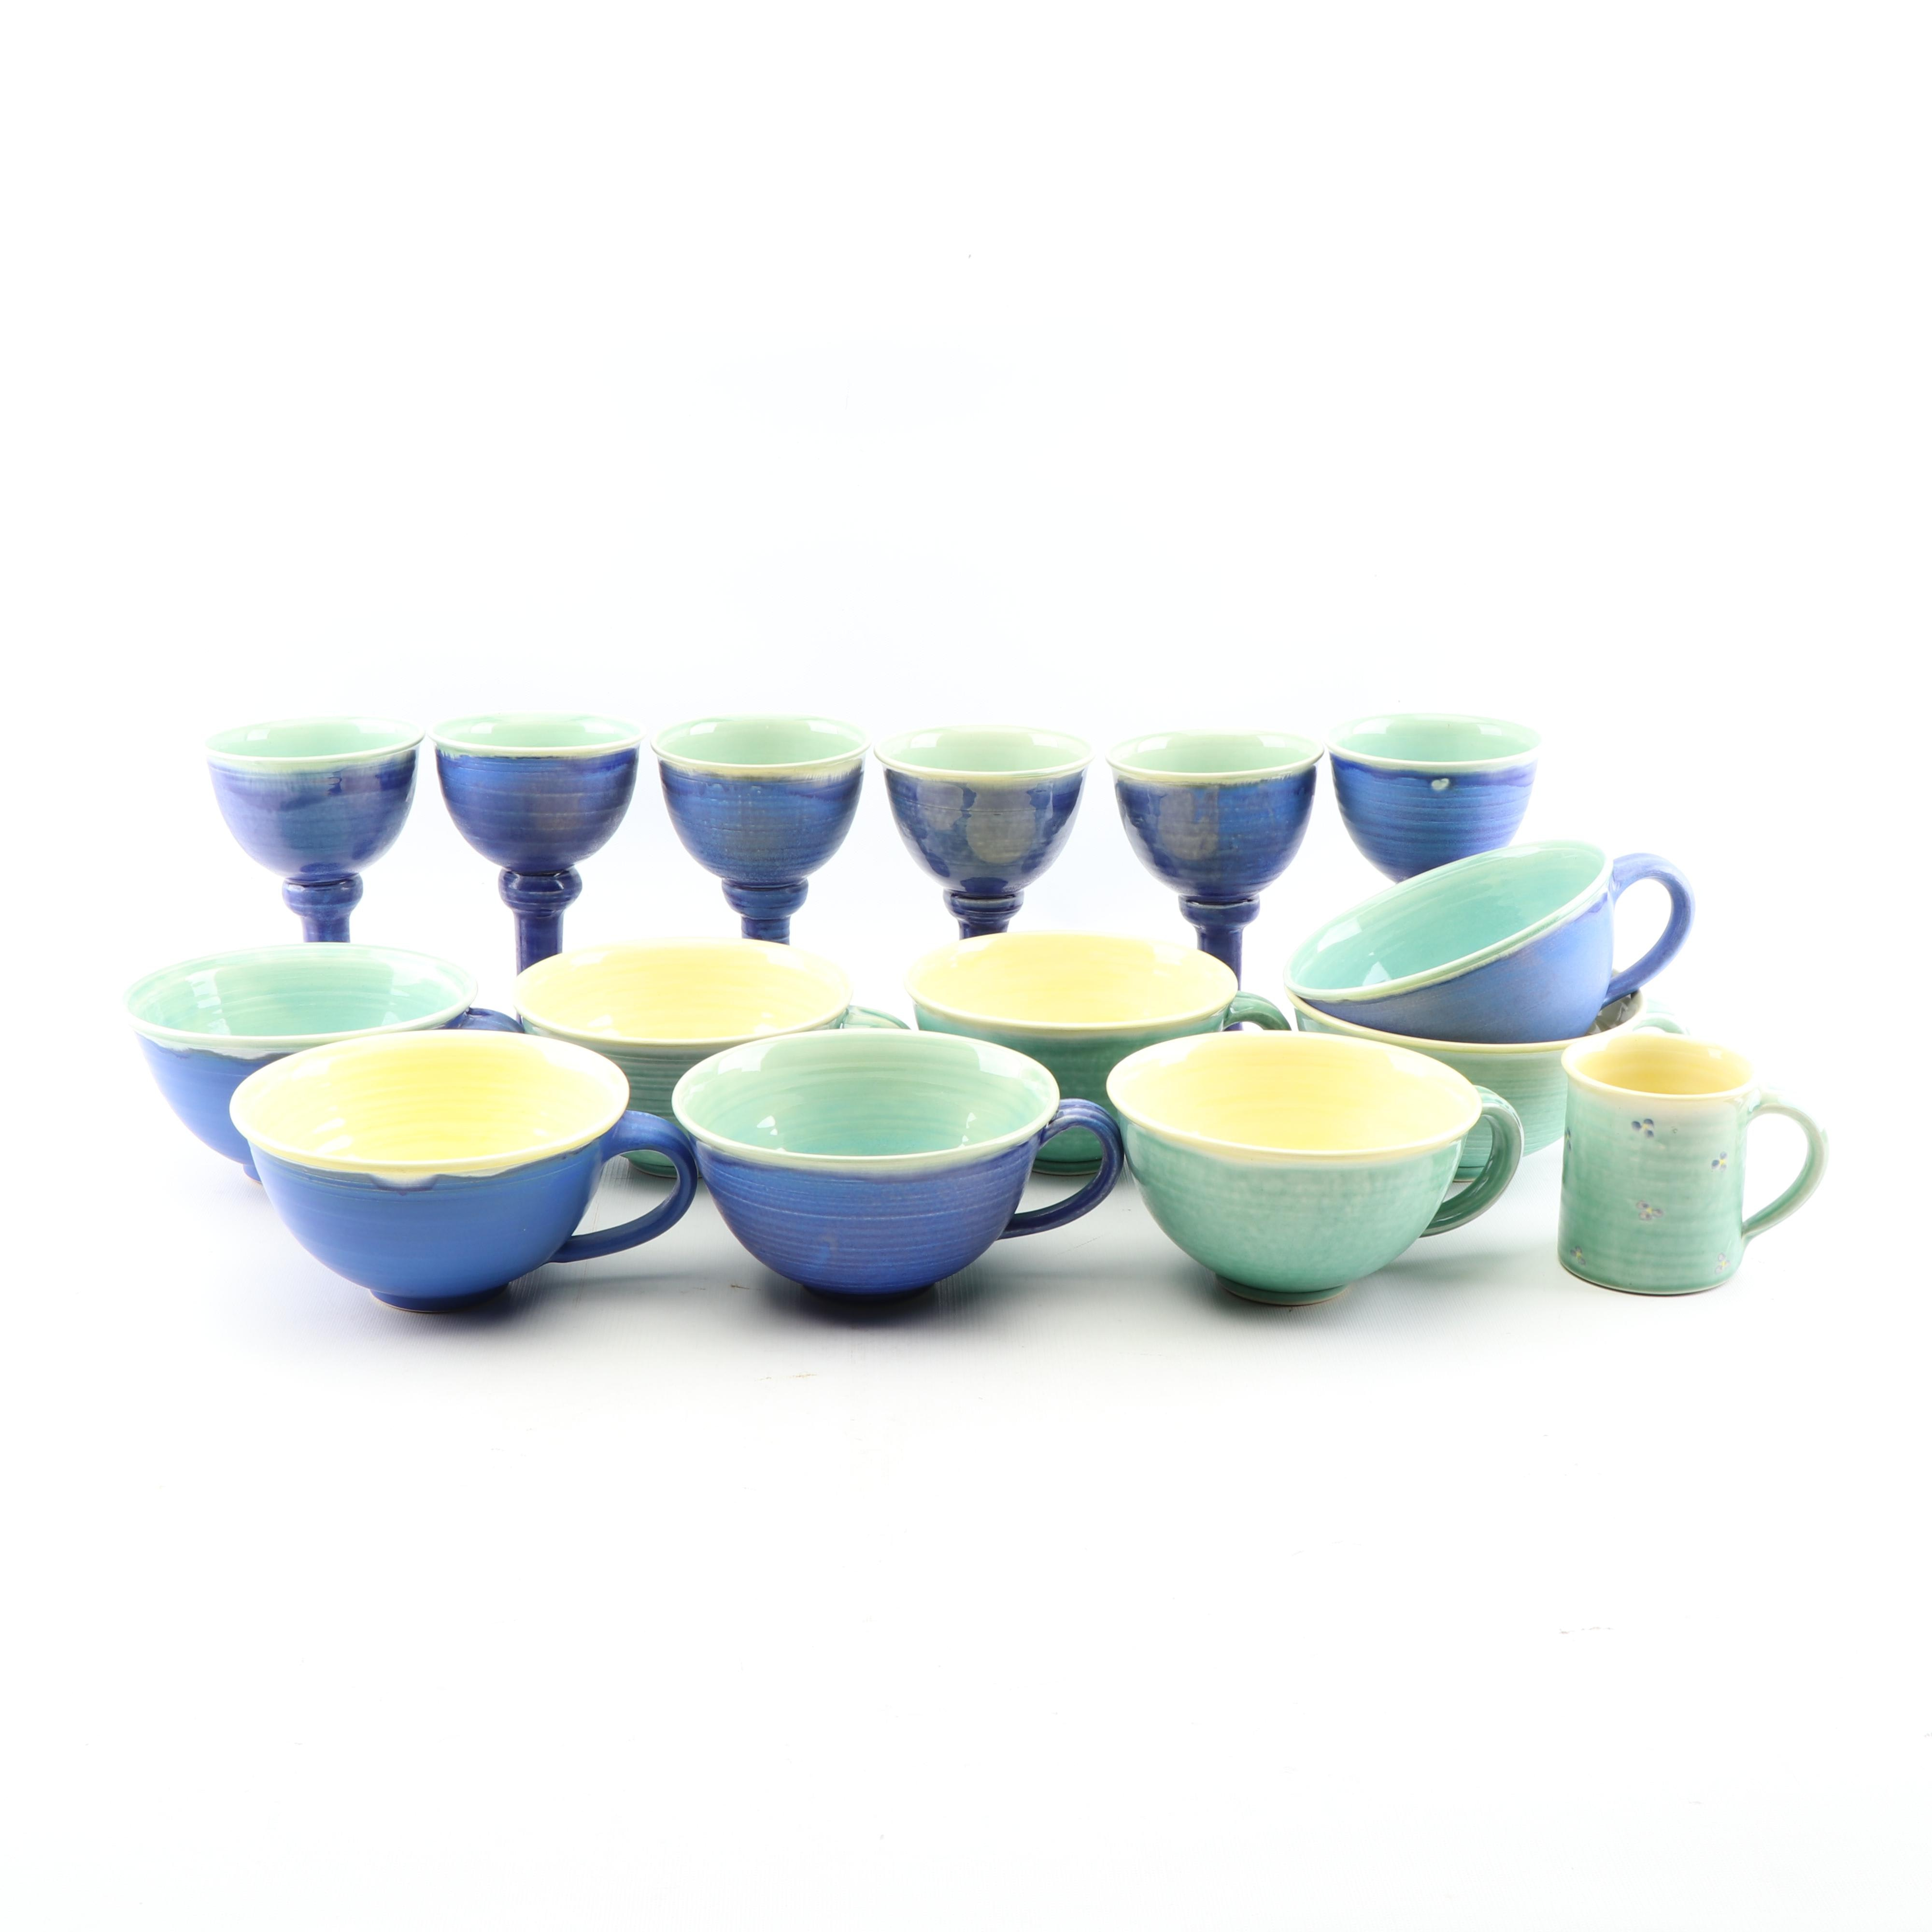 Beyond Blue Wheel Thrown Porcelain Goblets and Mugs, 21st Century